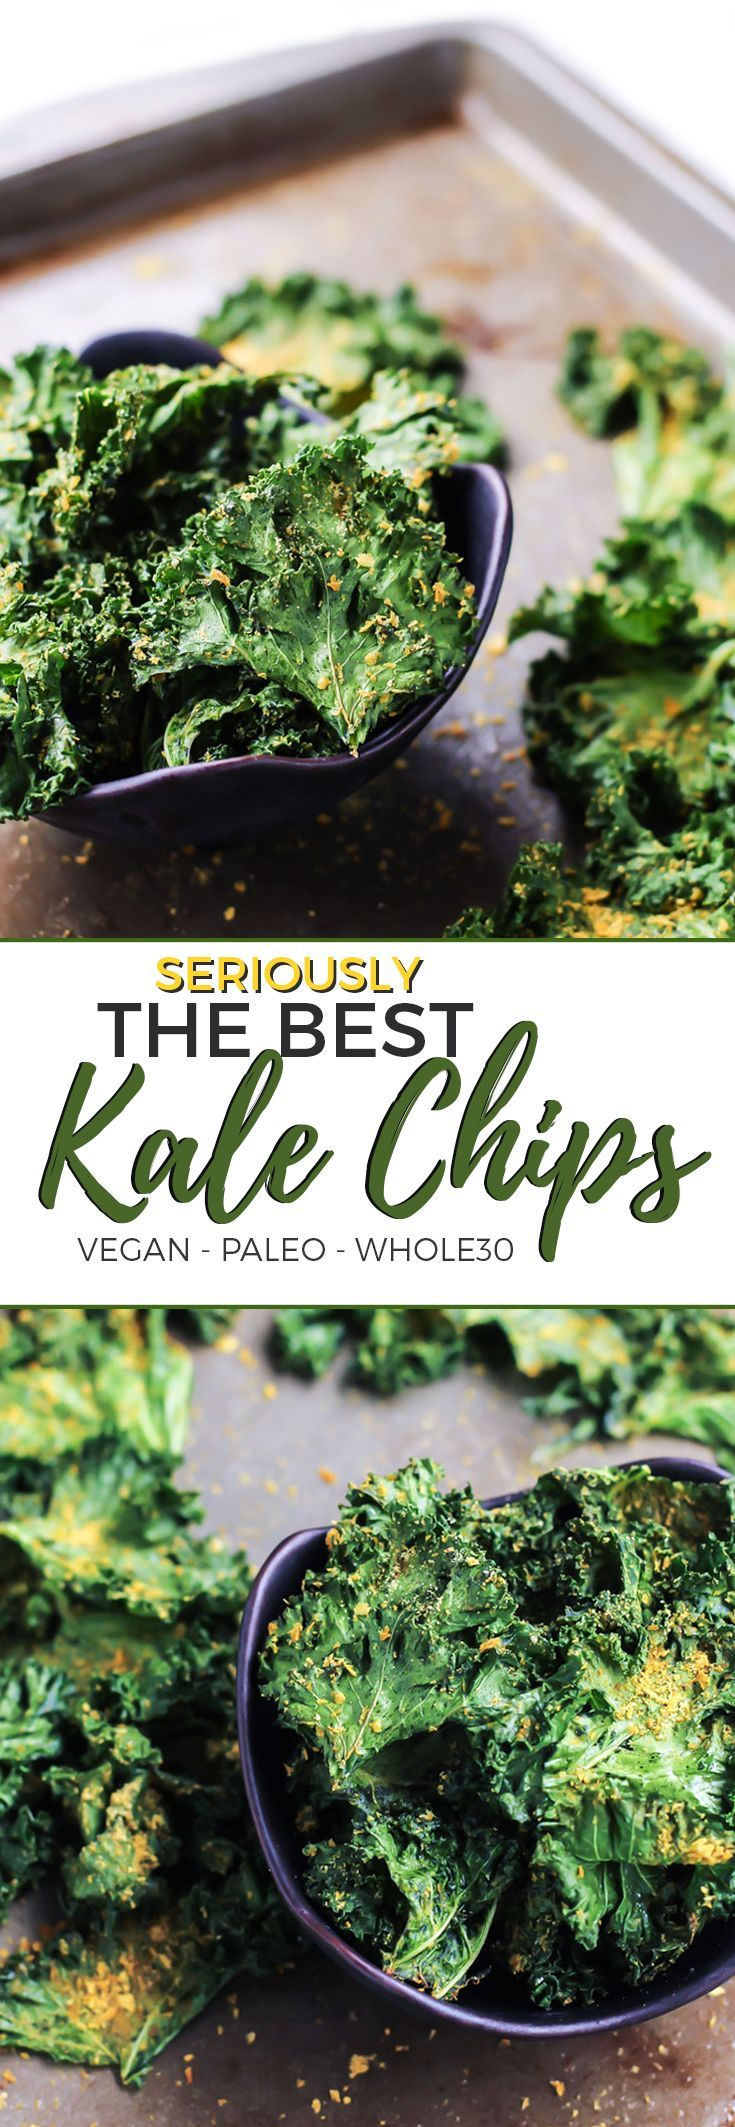 The Best Kale Chips [ vegan, paleo ] #cleaneating